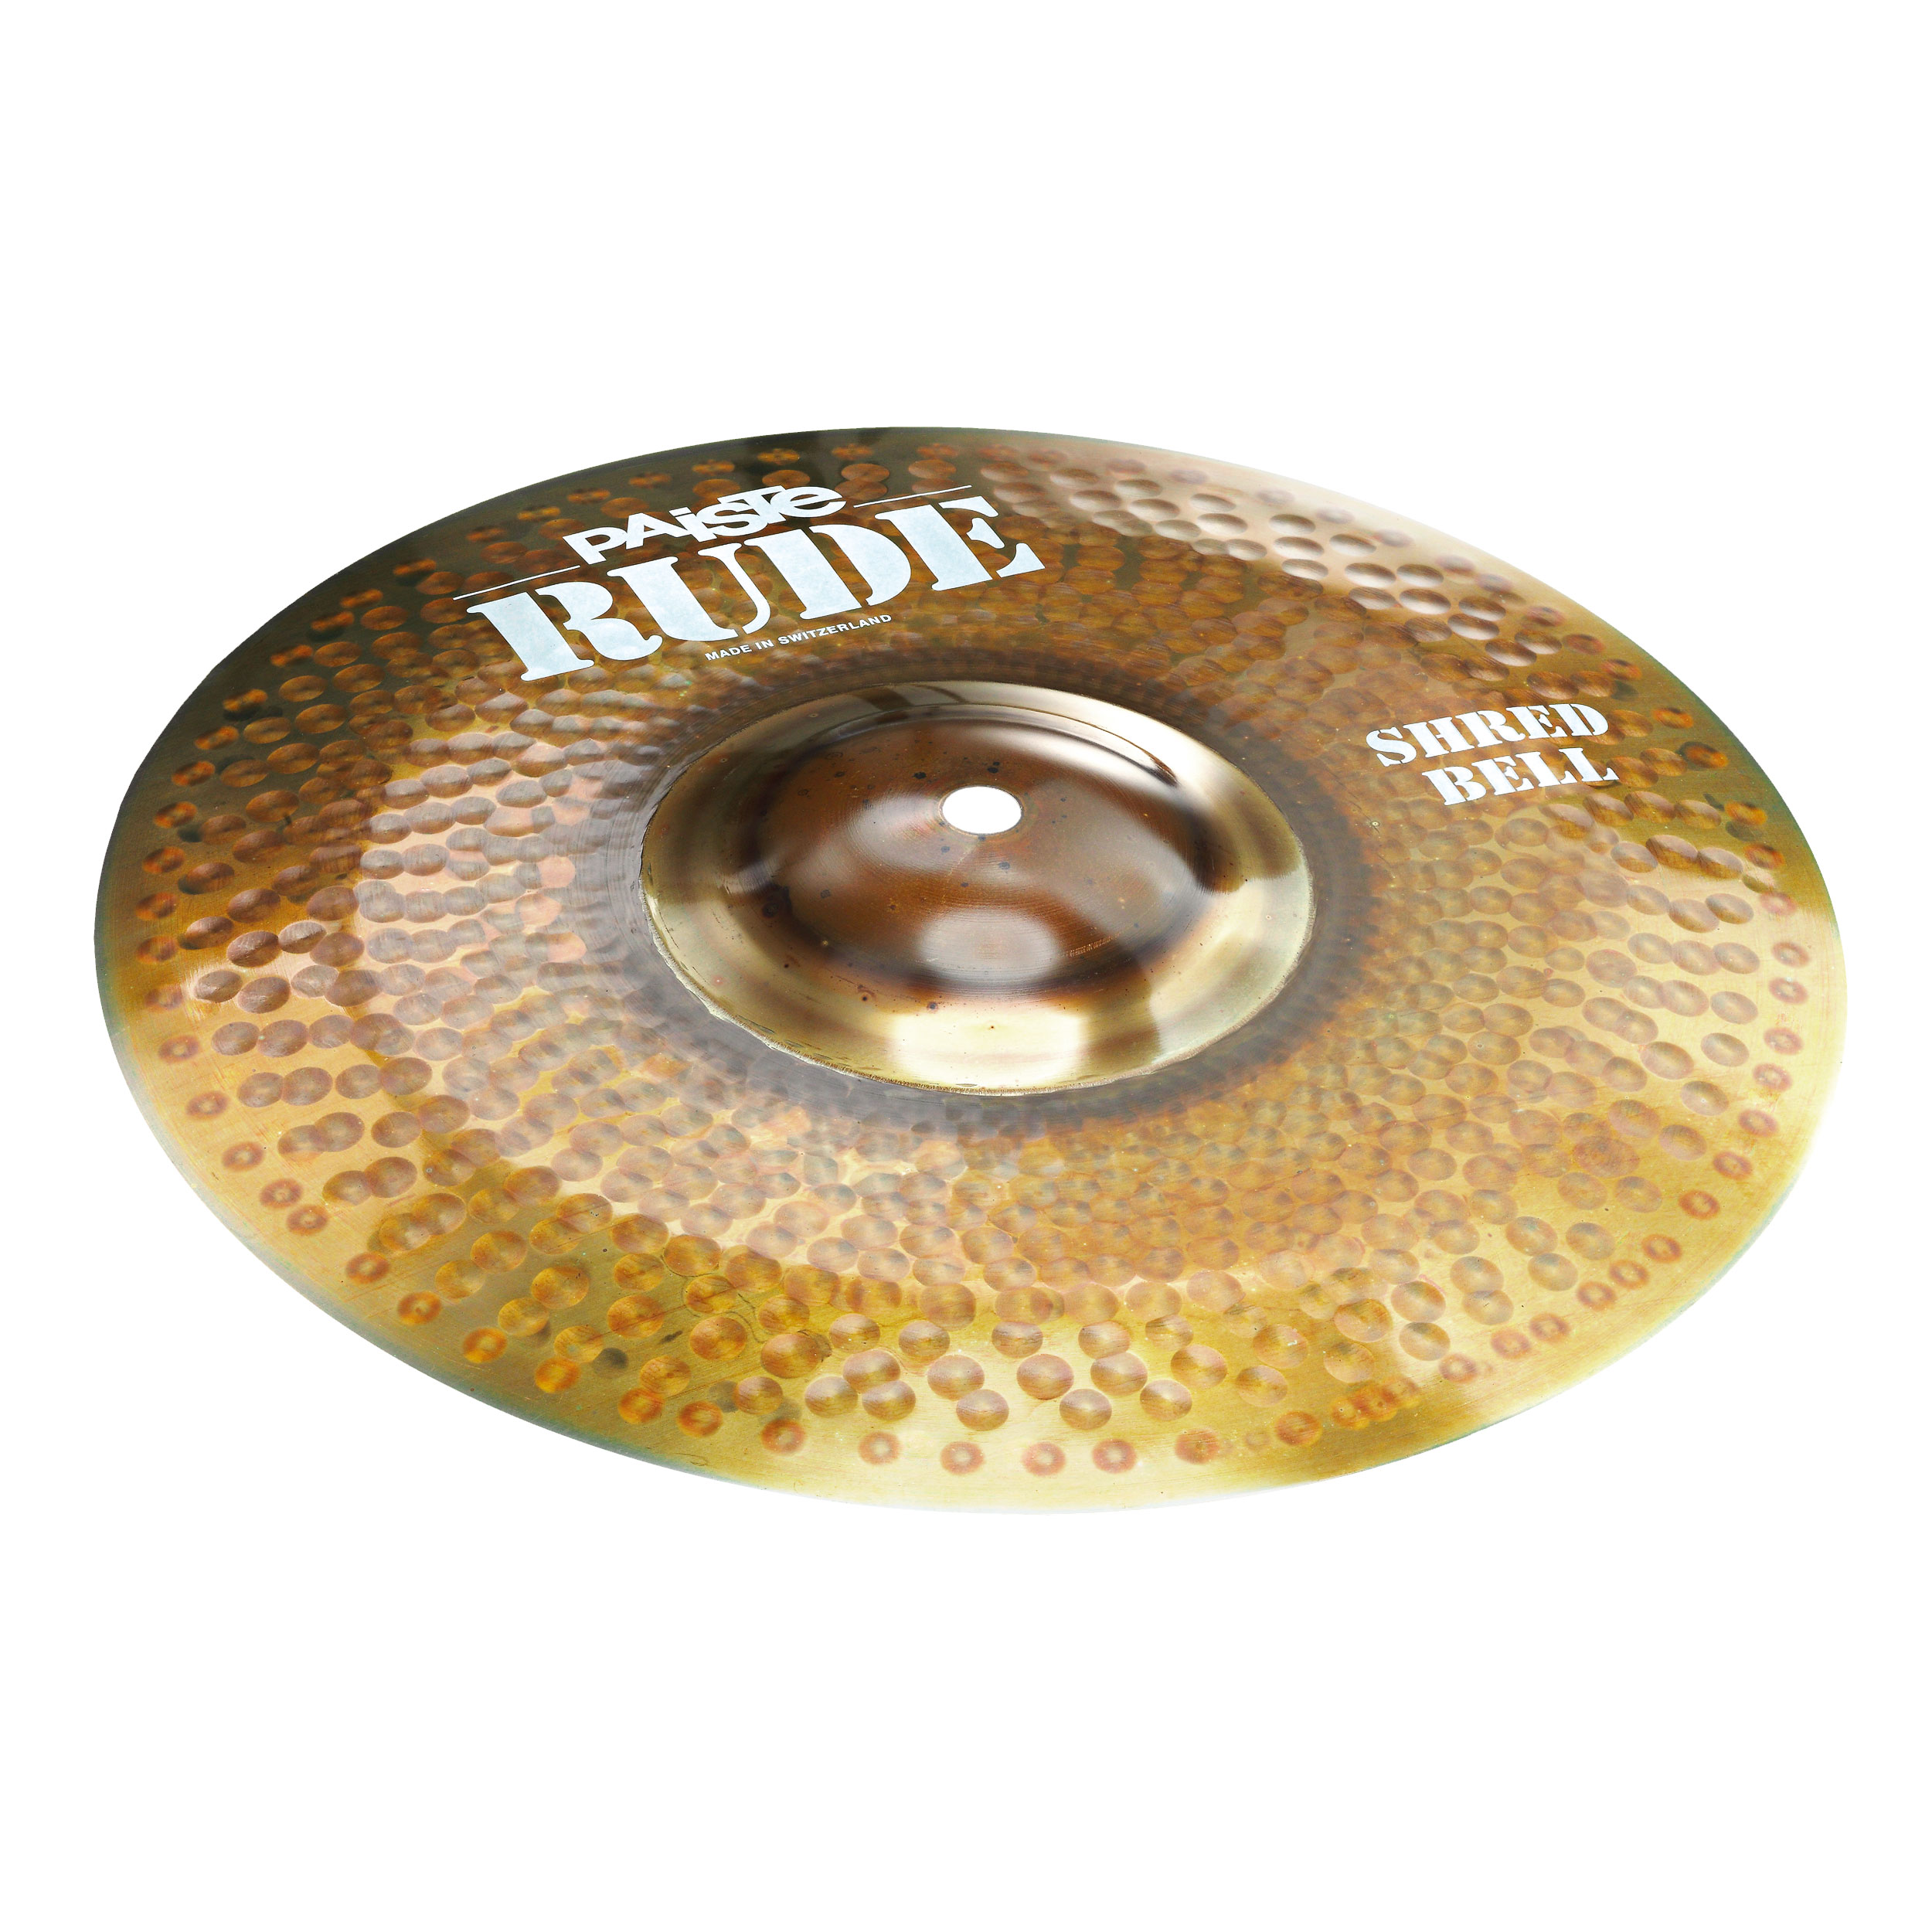 """Paiste 14"""" Rude Shred Bell Cymbal"""